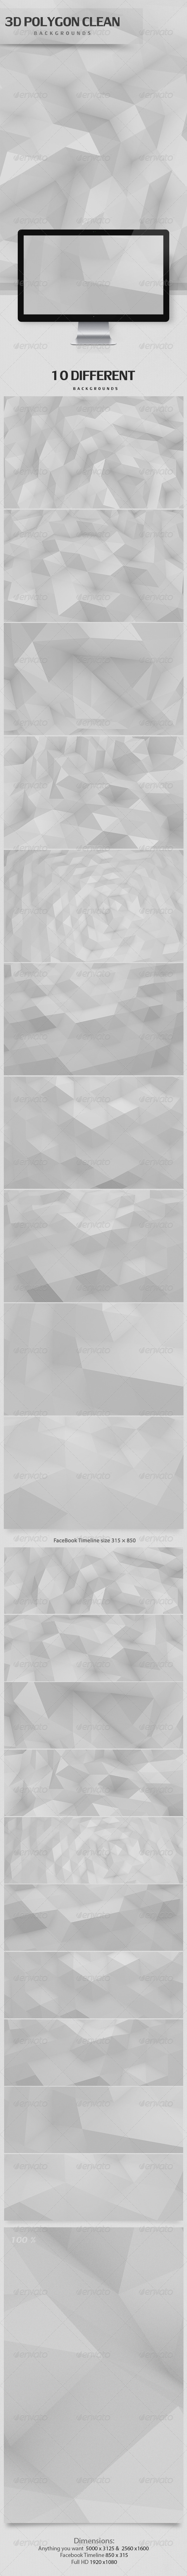 3d-Polygon-Clean-Backgrounds-GraphicRiver-3d-Polygon-Clean-Backgrounds-Dimension-wallpaper-wp3801275